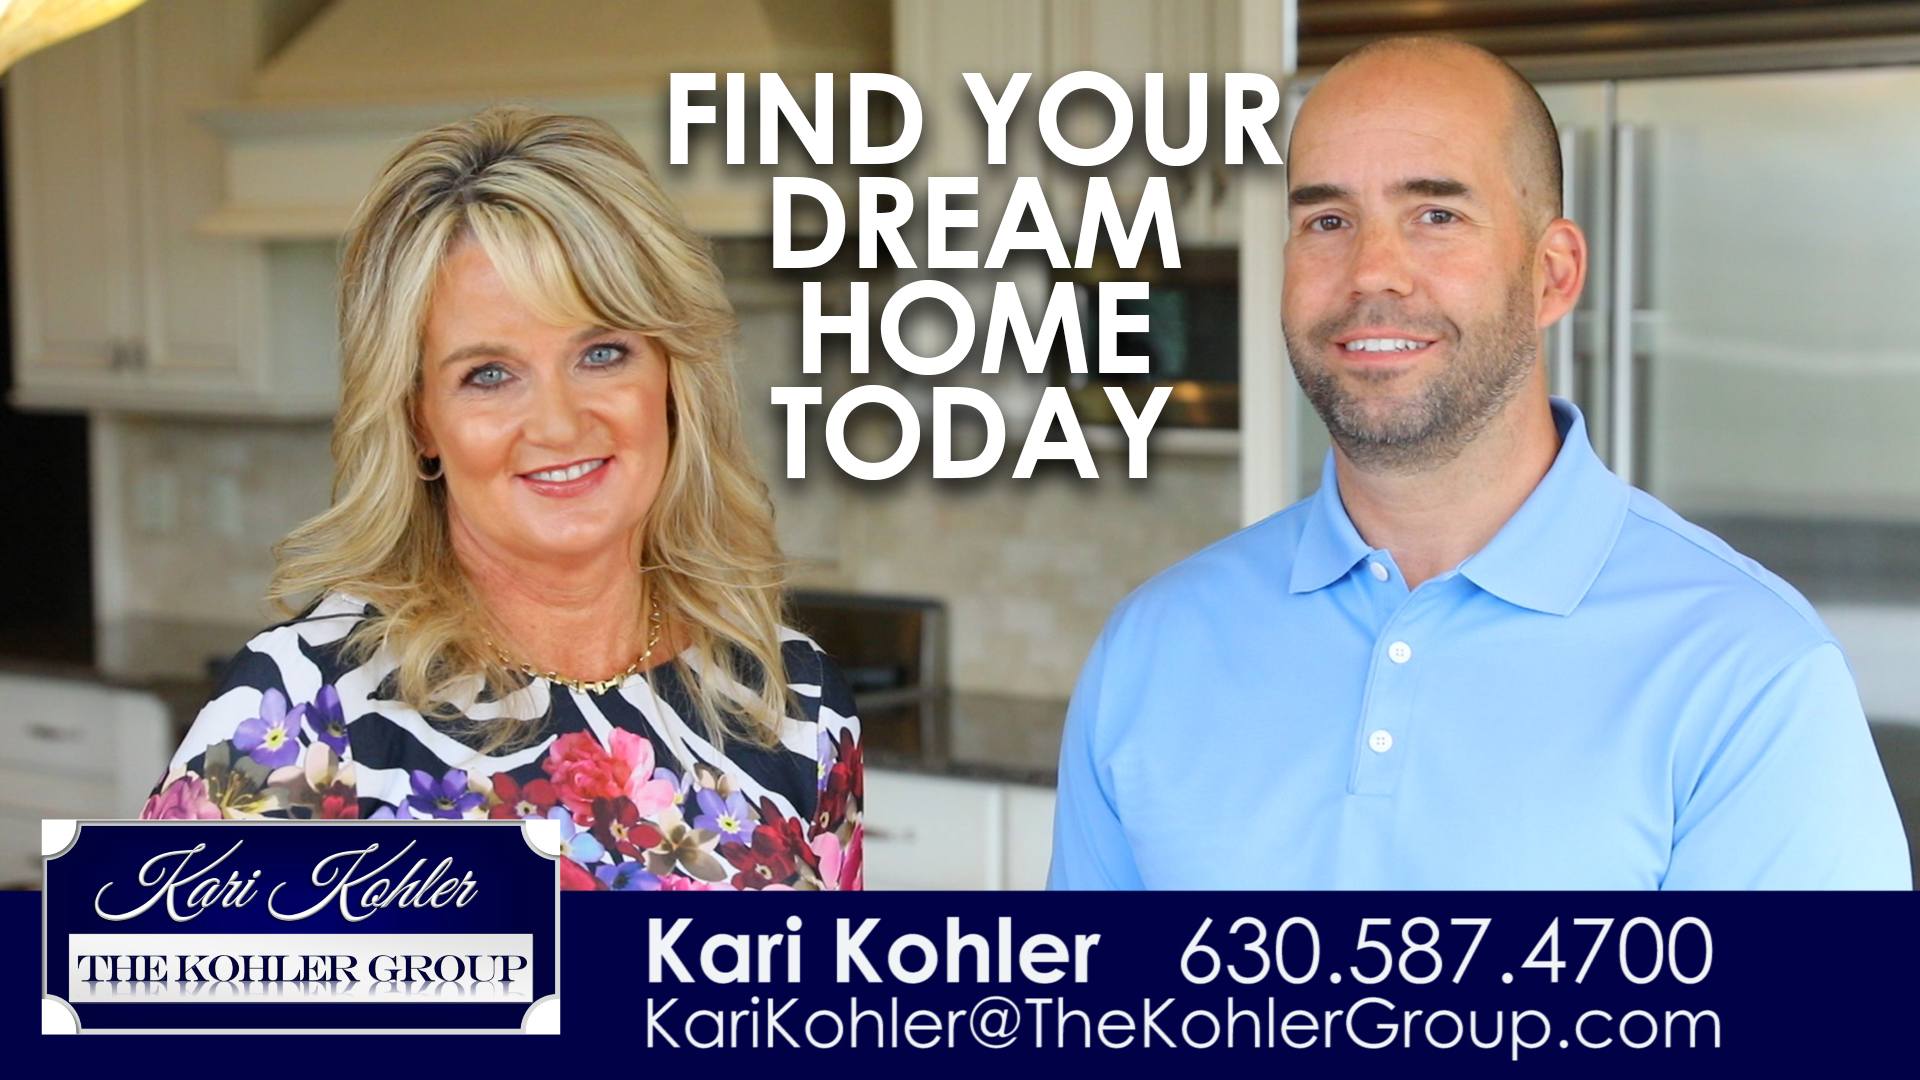 Why Is Now the Perfect Time to Find Your Dream Home?